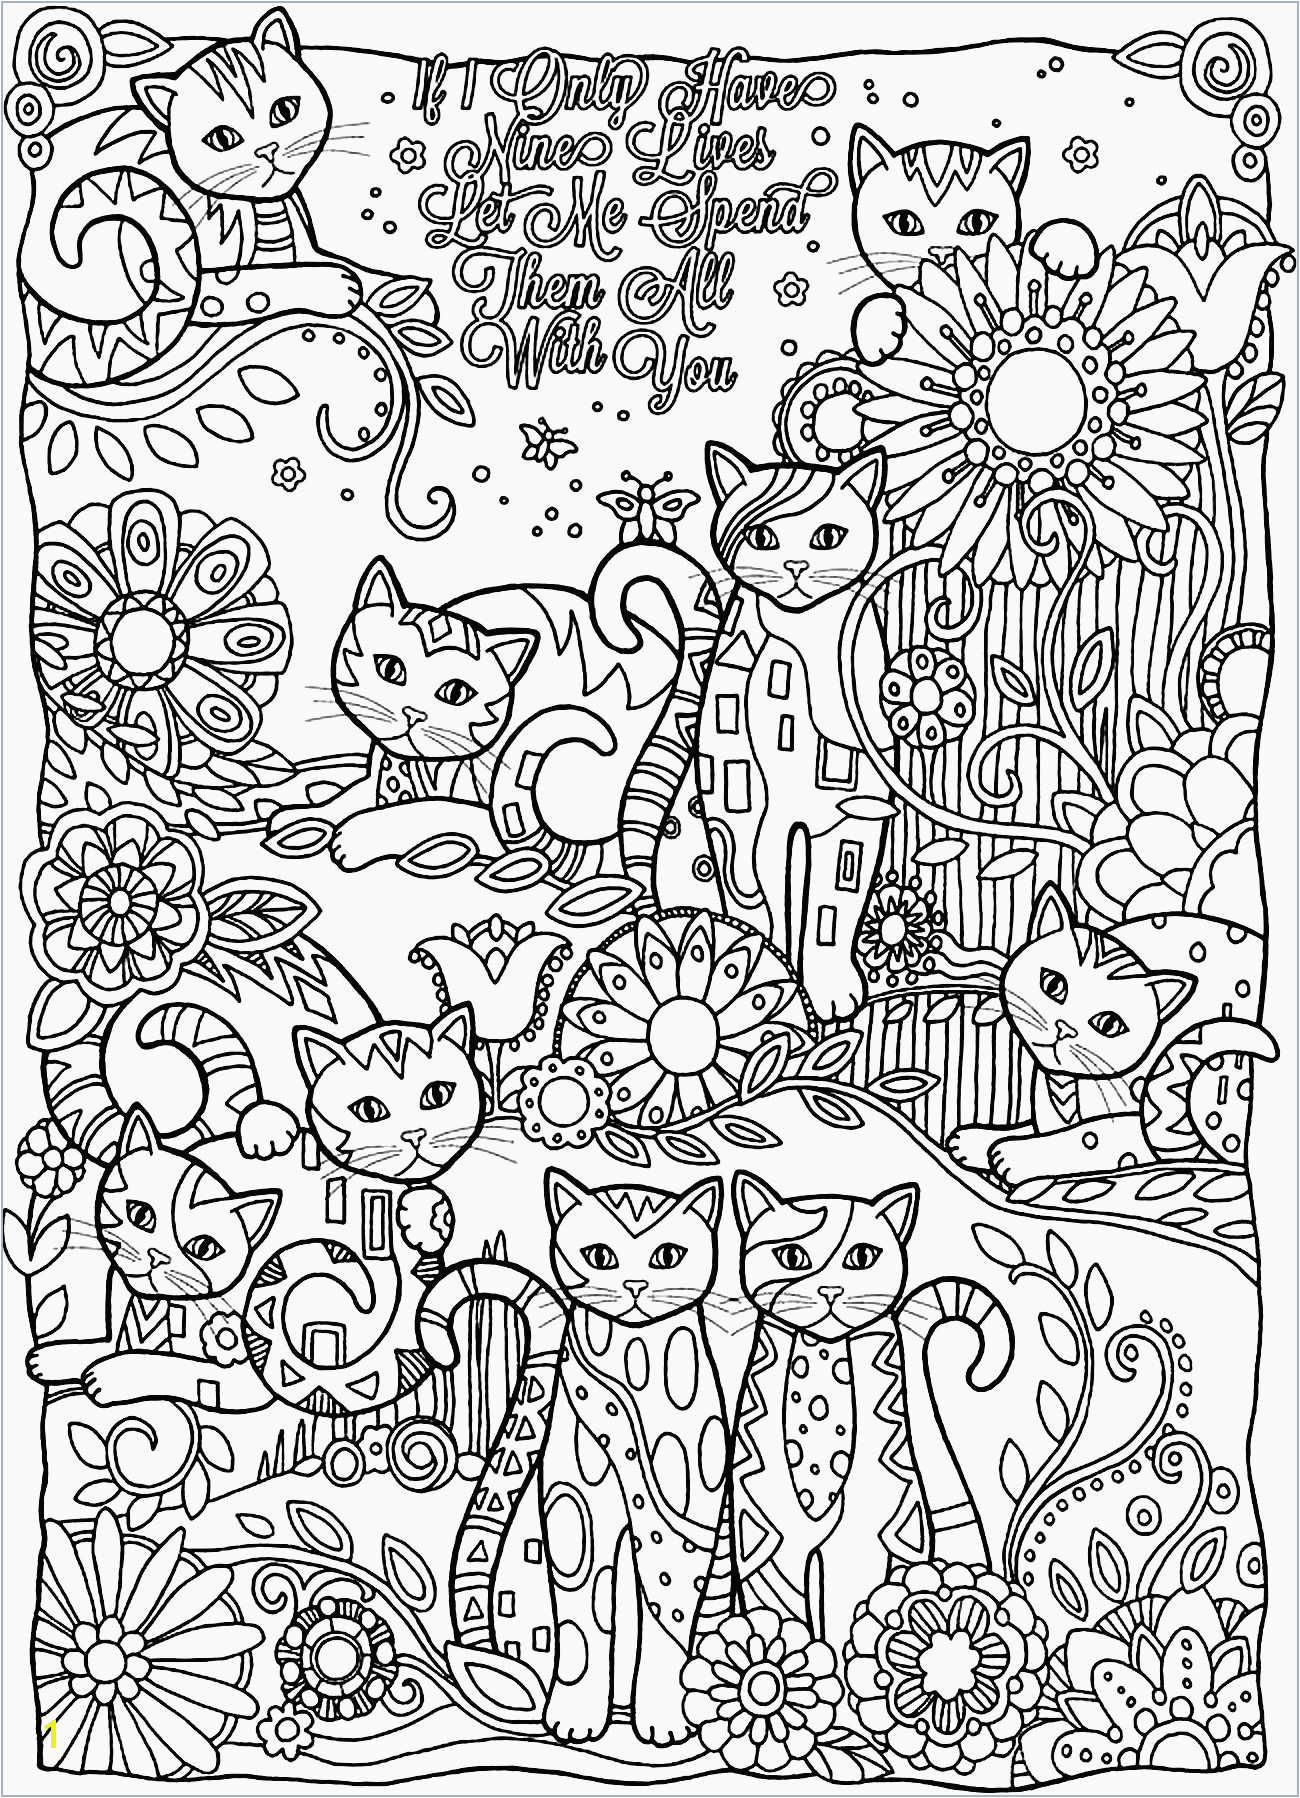 Free Printable Holiday Coloring Pages Prettier Cute Printable Coloring Pages New Printable Od Dog Coloring Pages